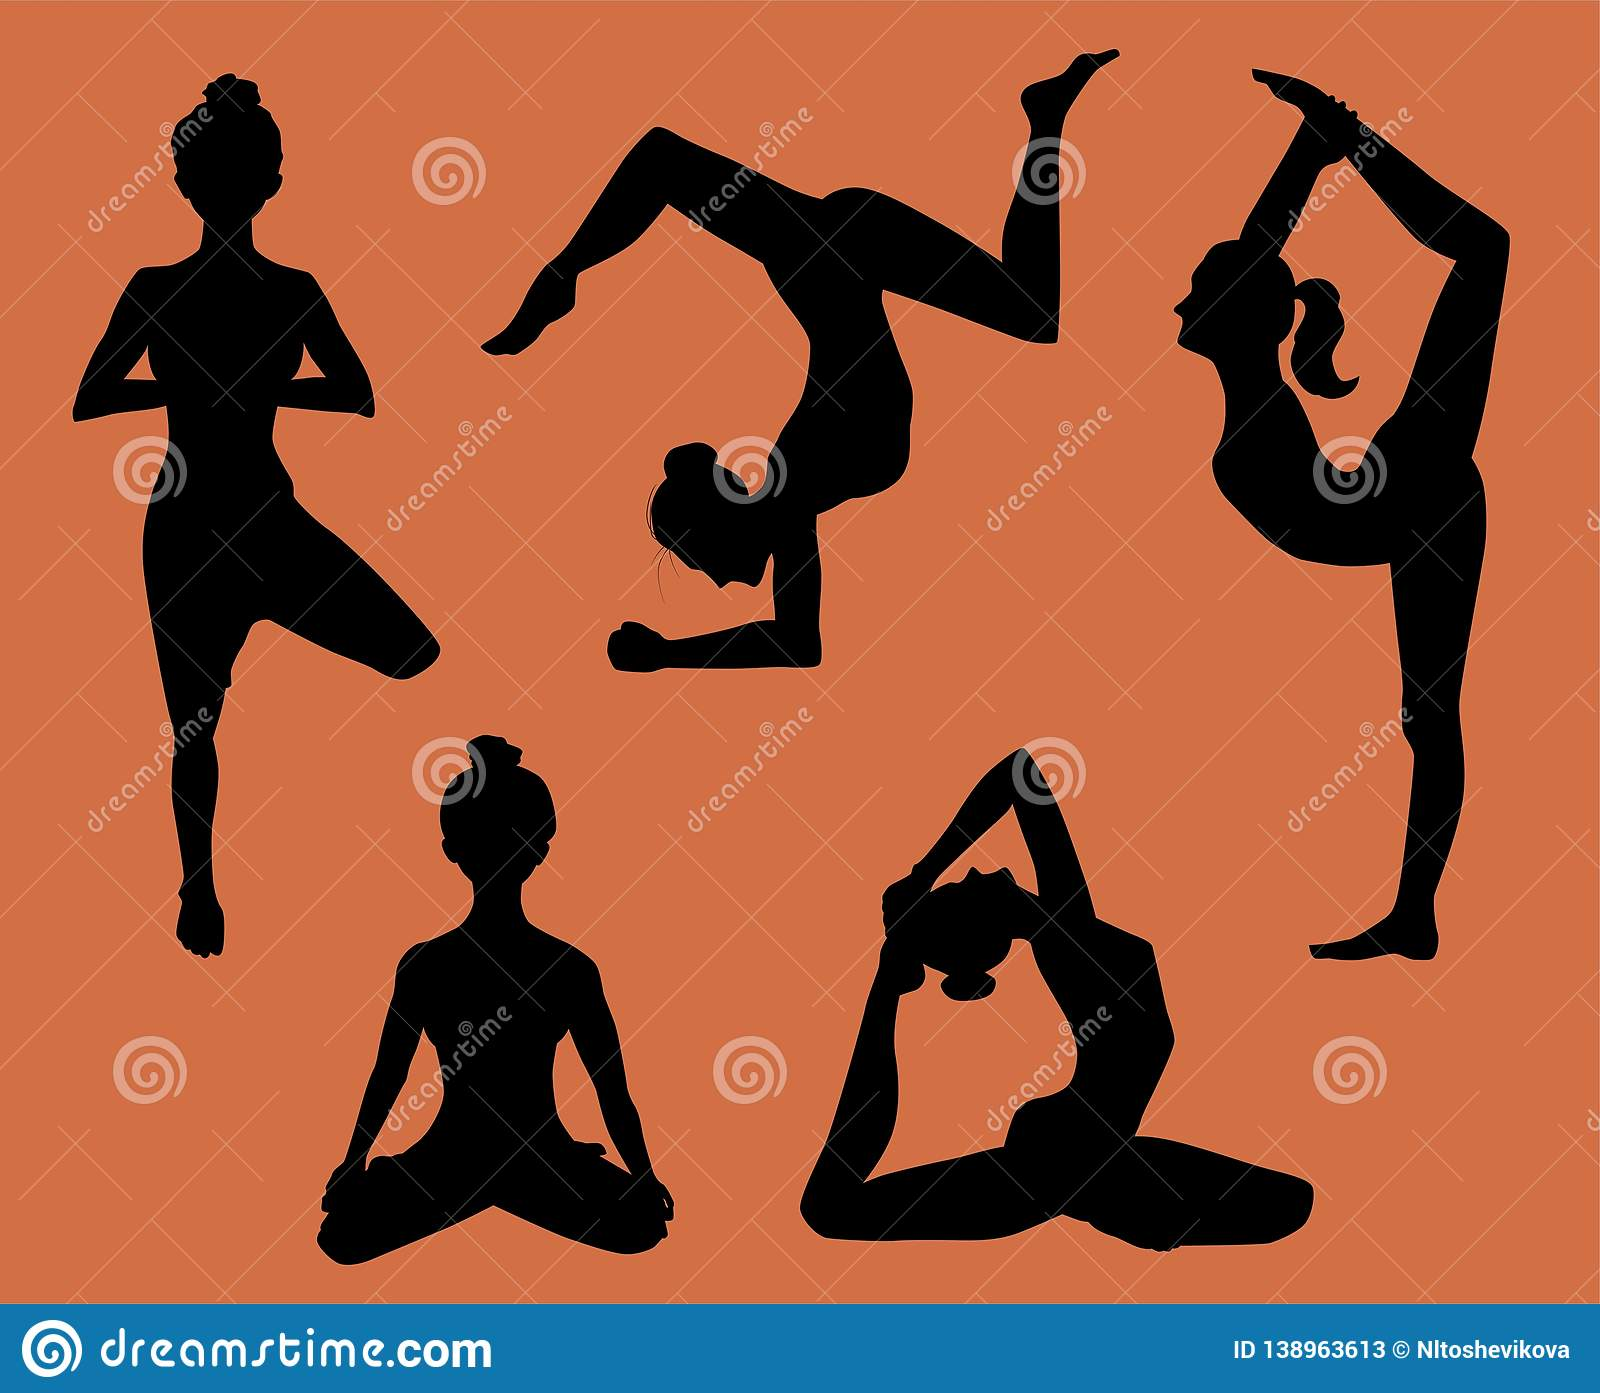 Silhouettes of women doing yoga, illustration